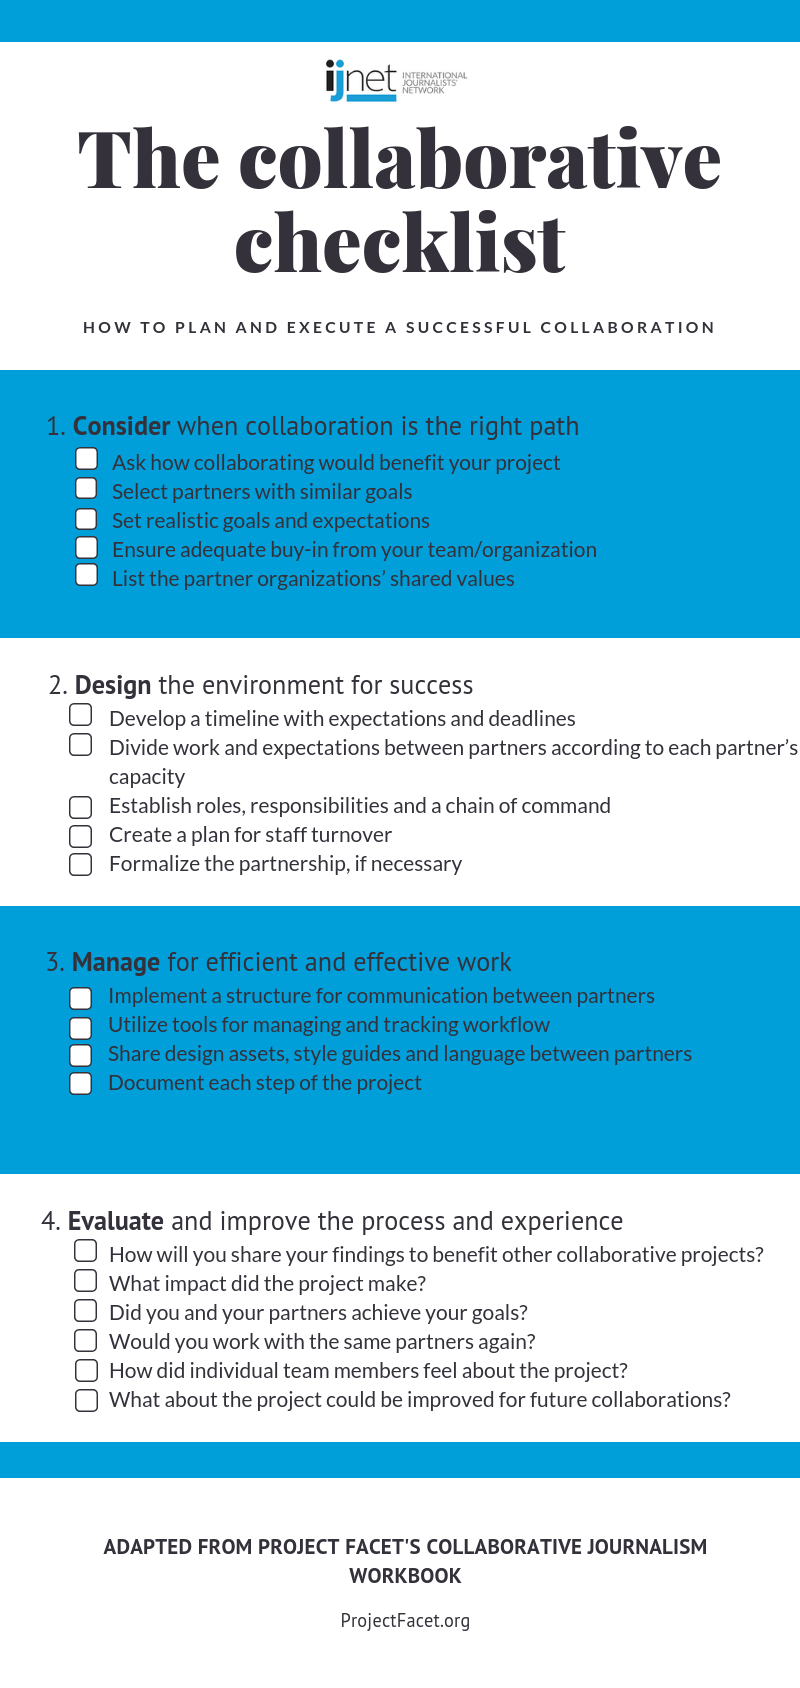 The collaborative checklist